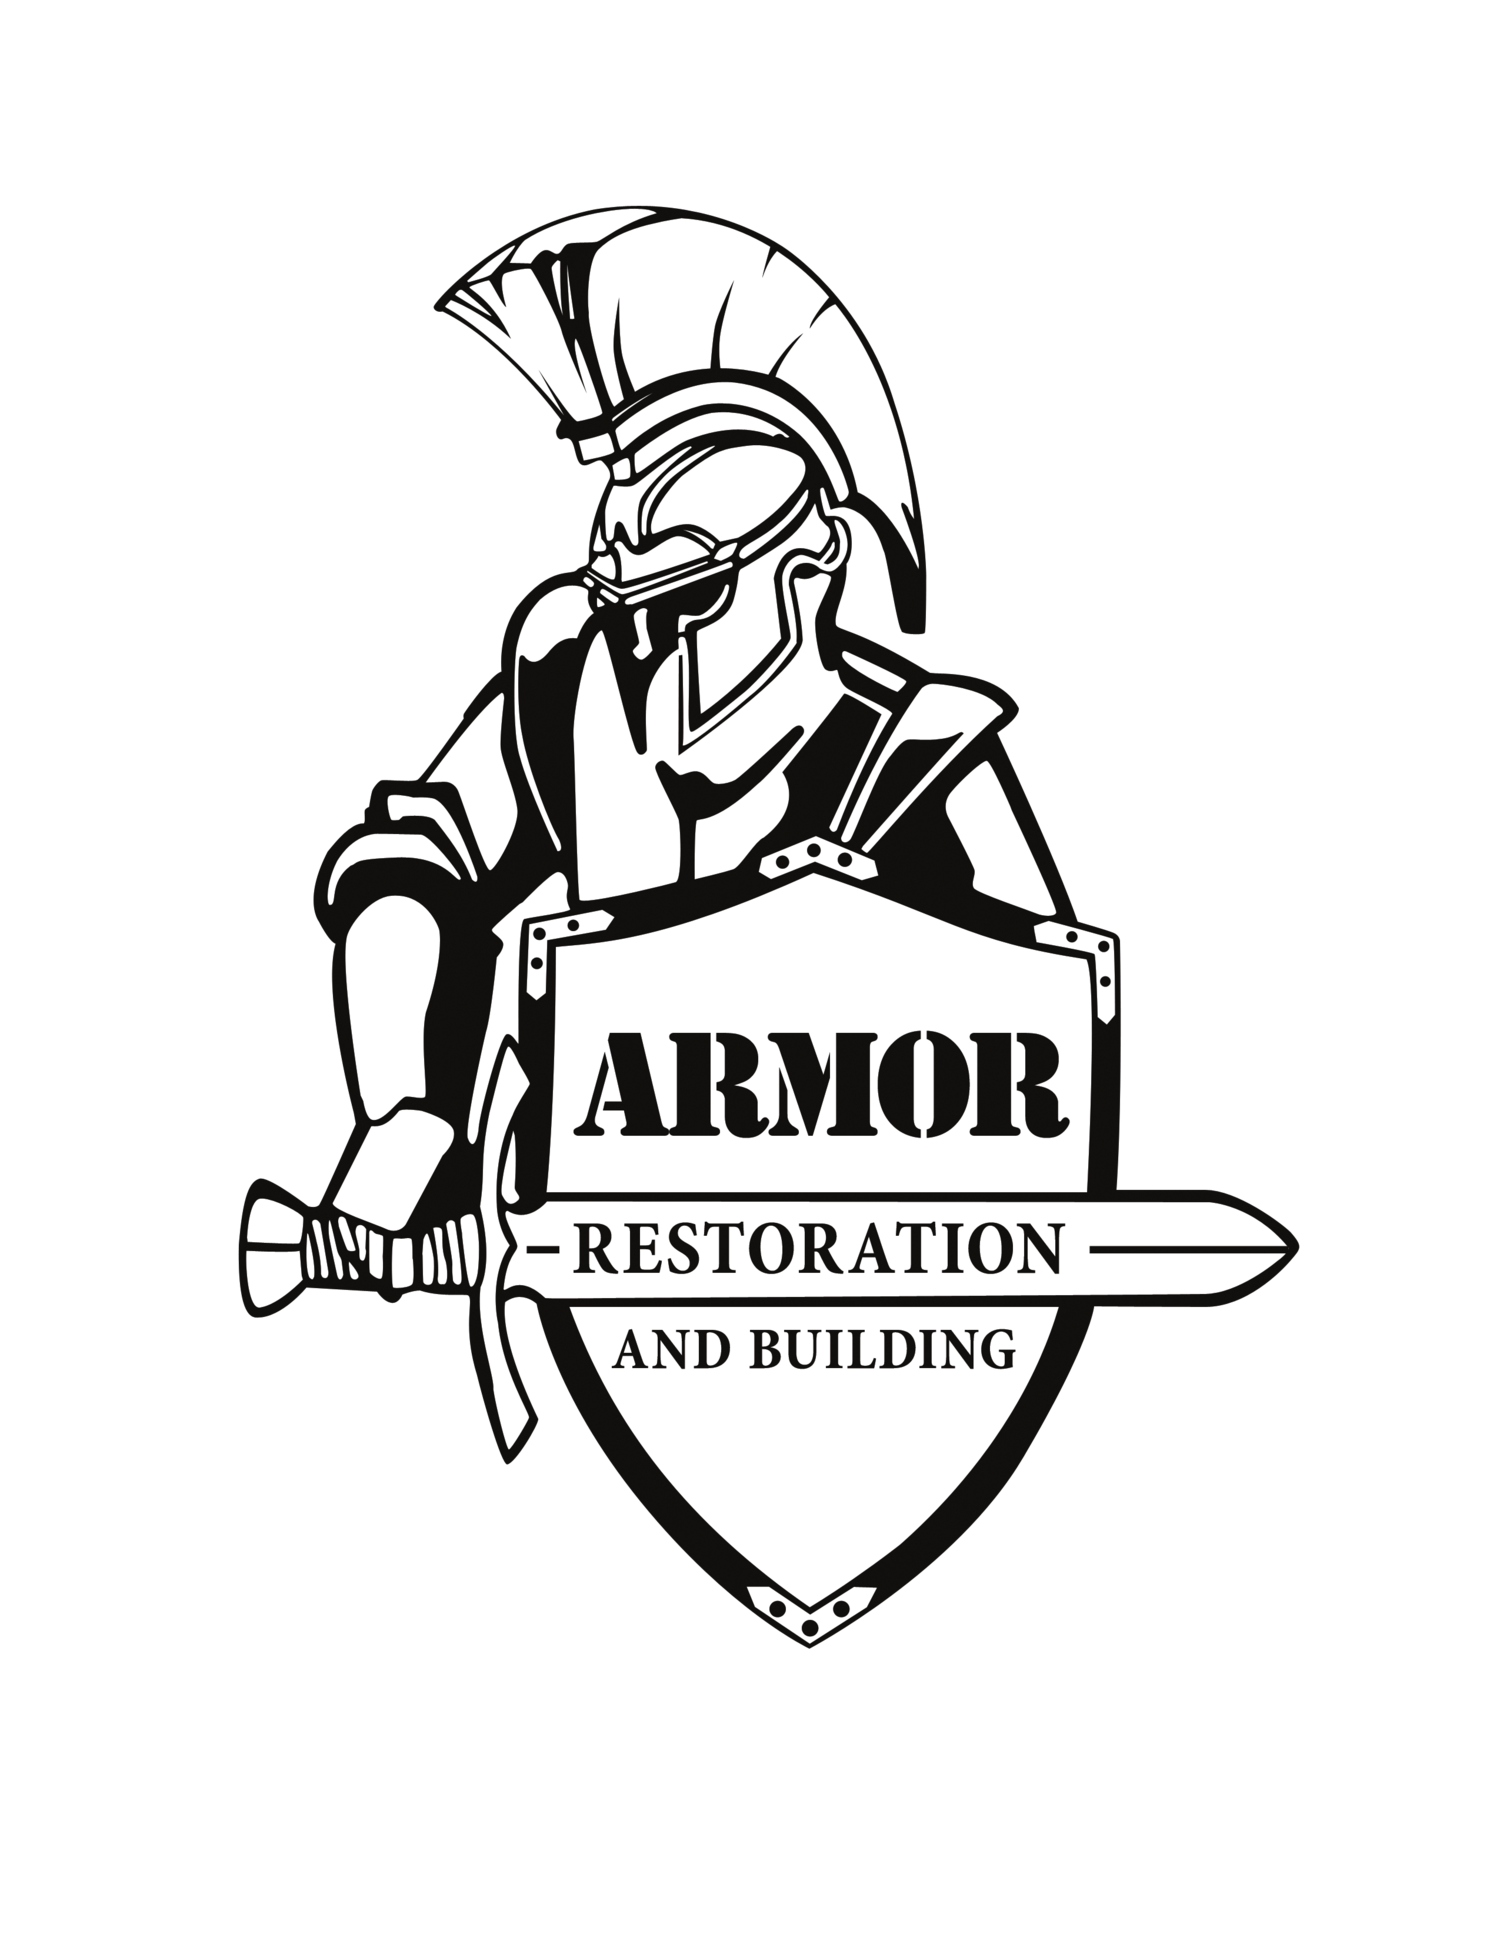 Armor Restoration and Building